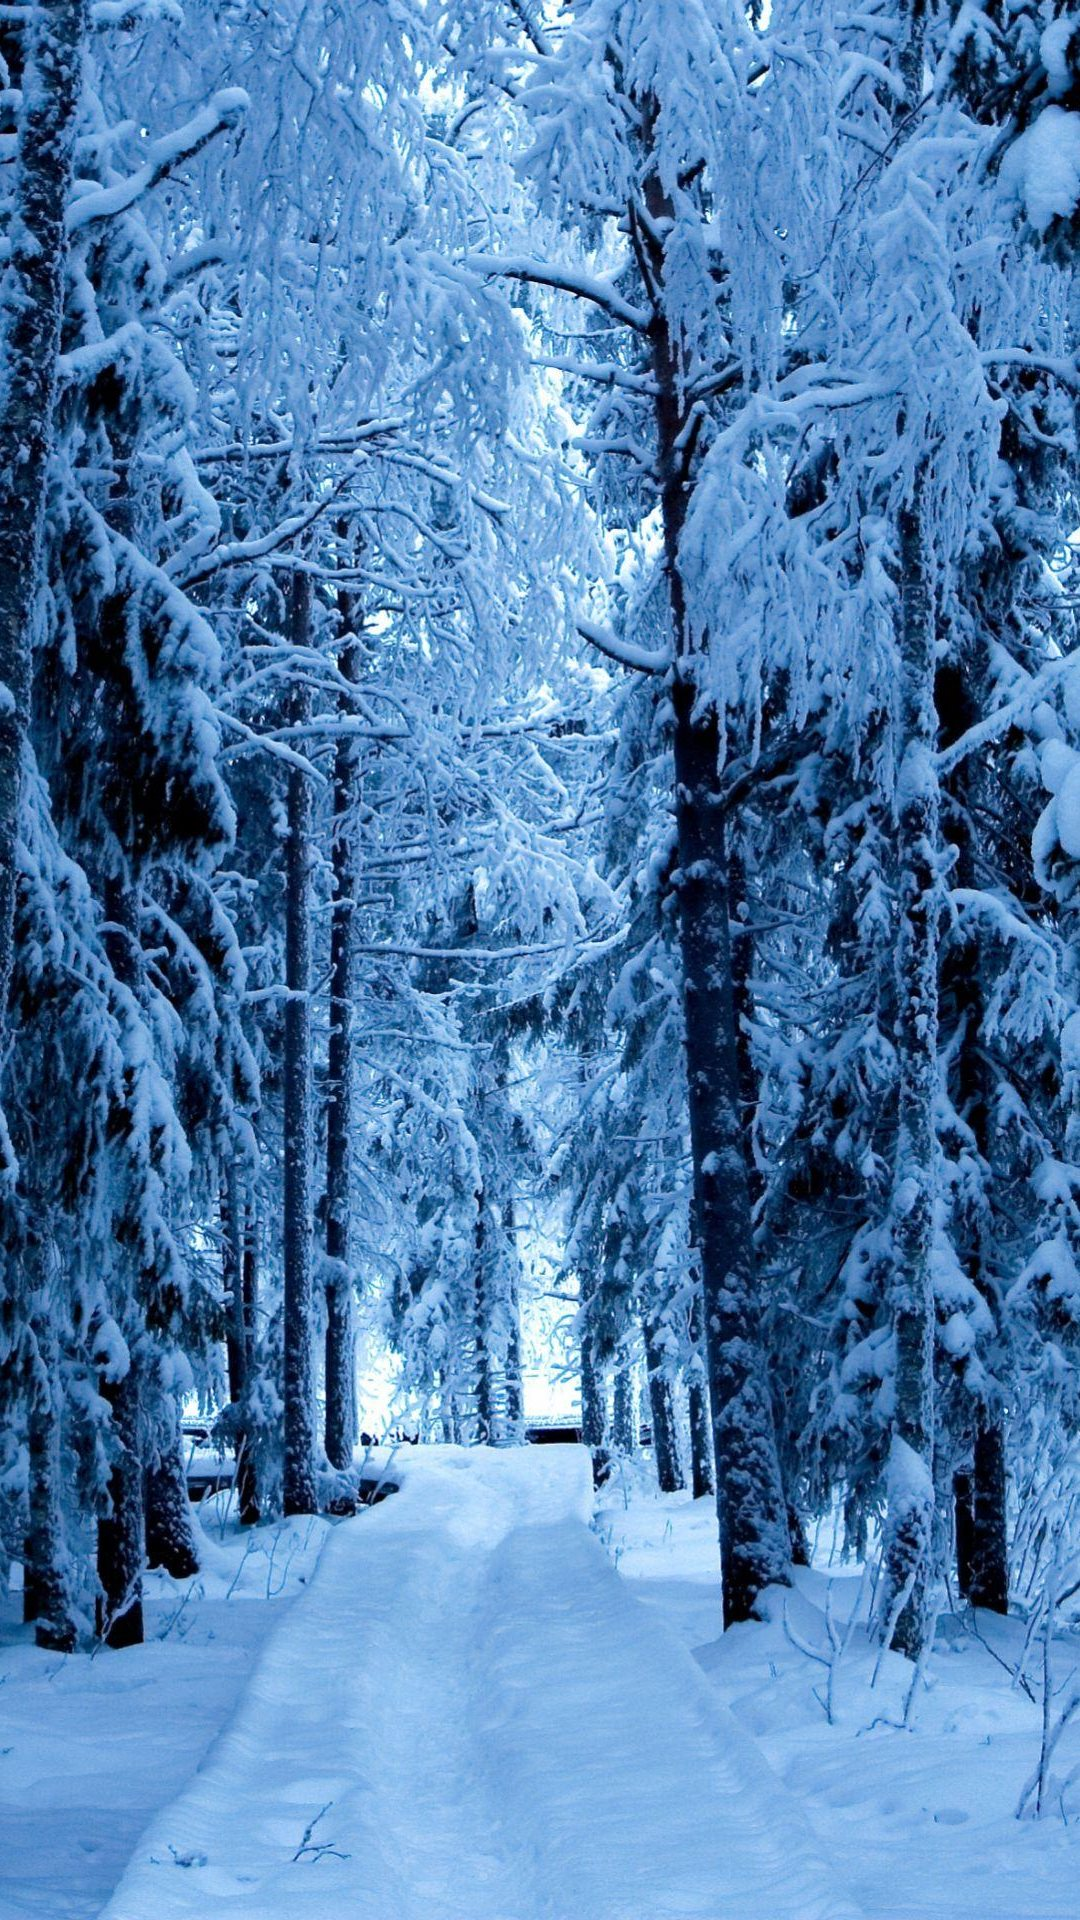 Snow Forest Blue Ice Android Wallpaper download 1080x1920